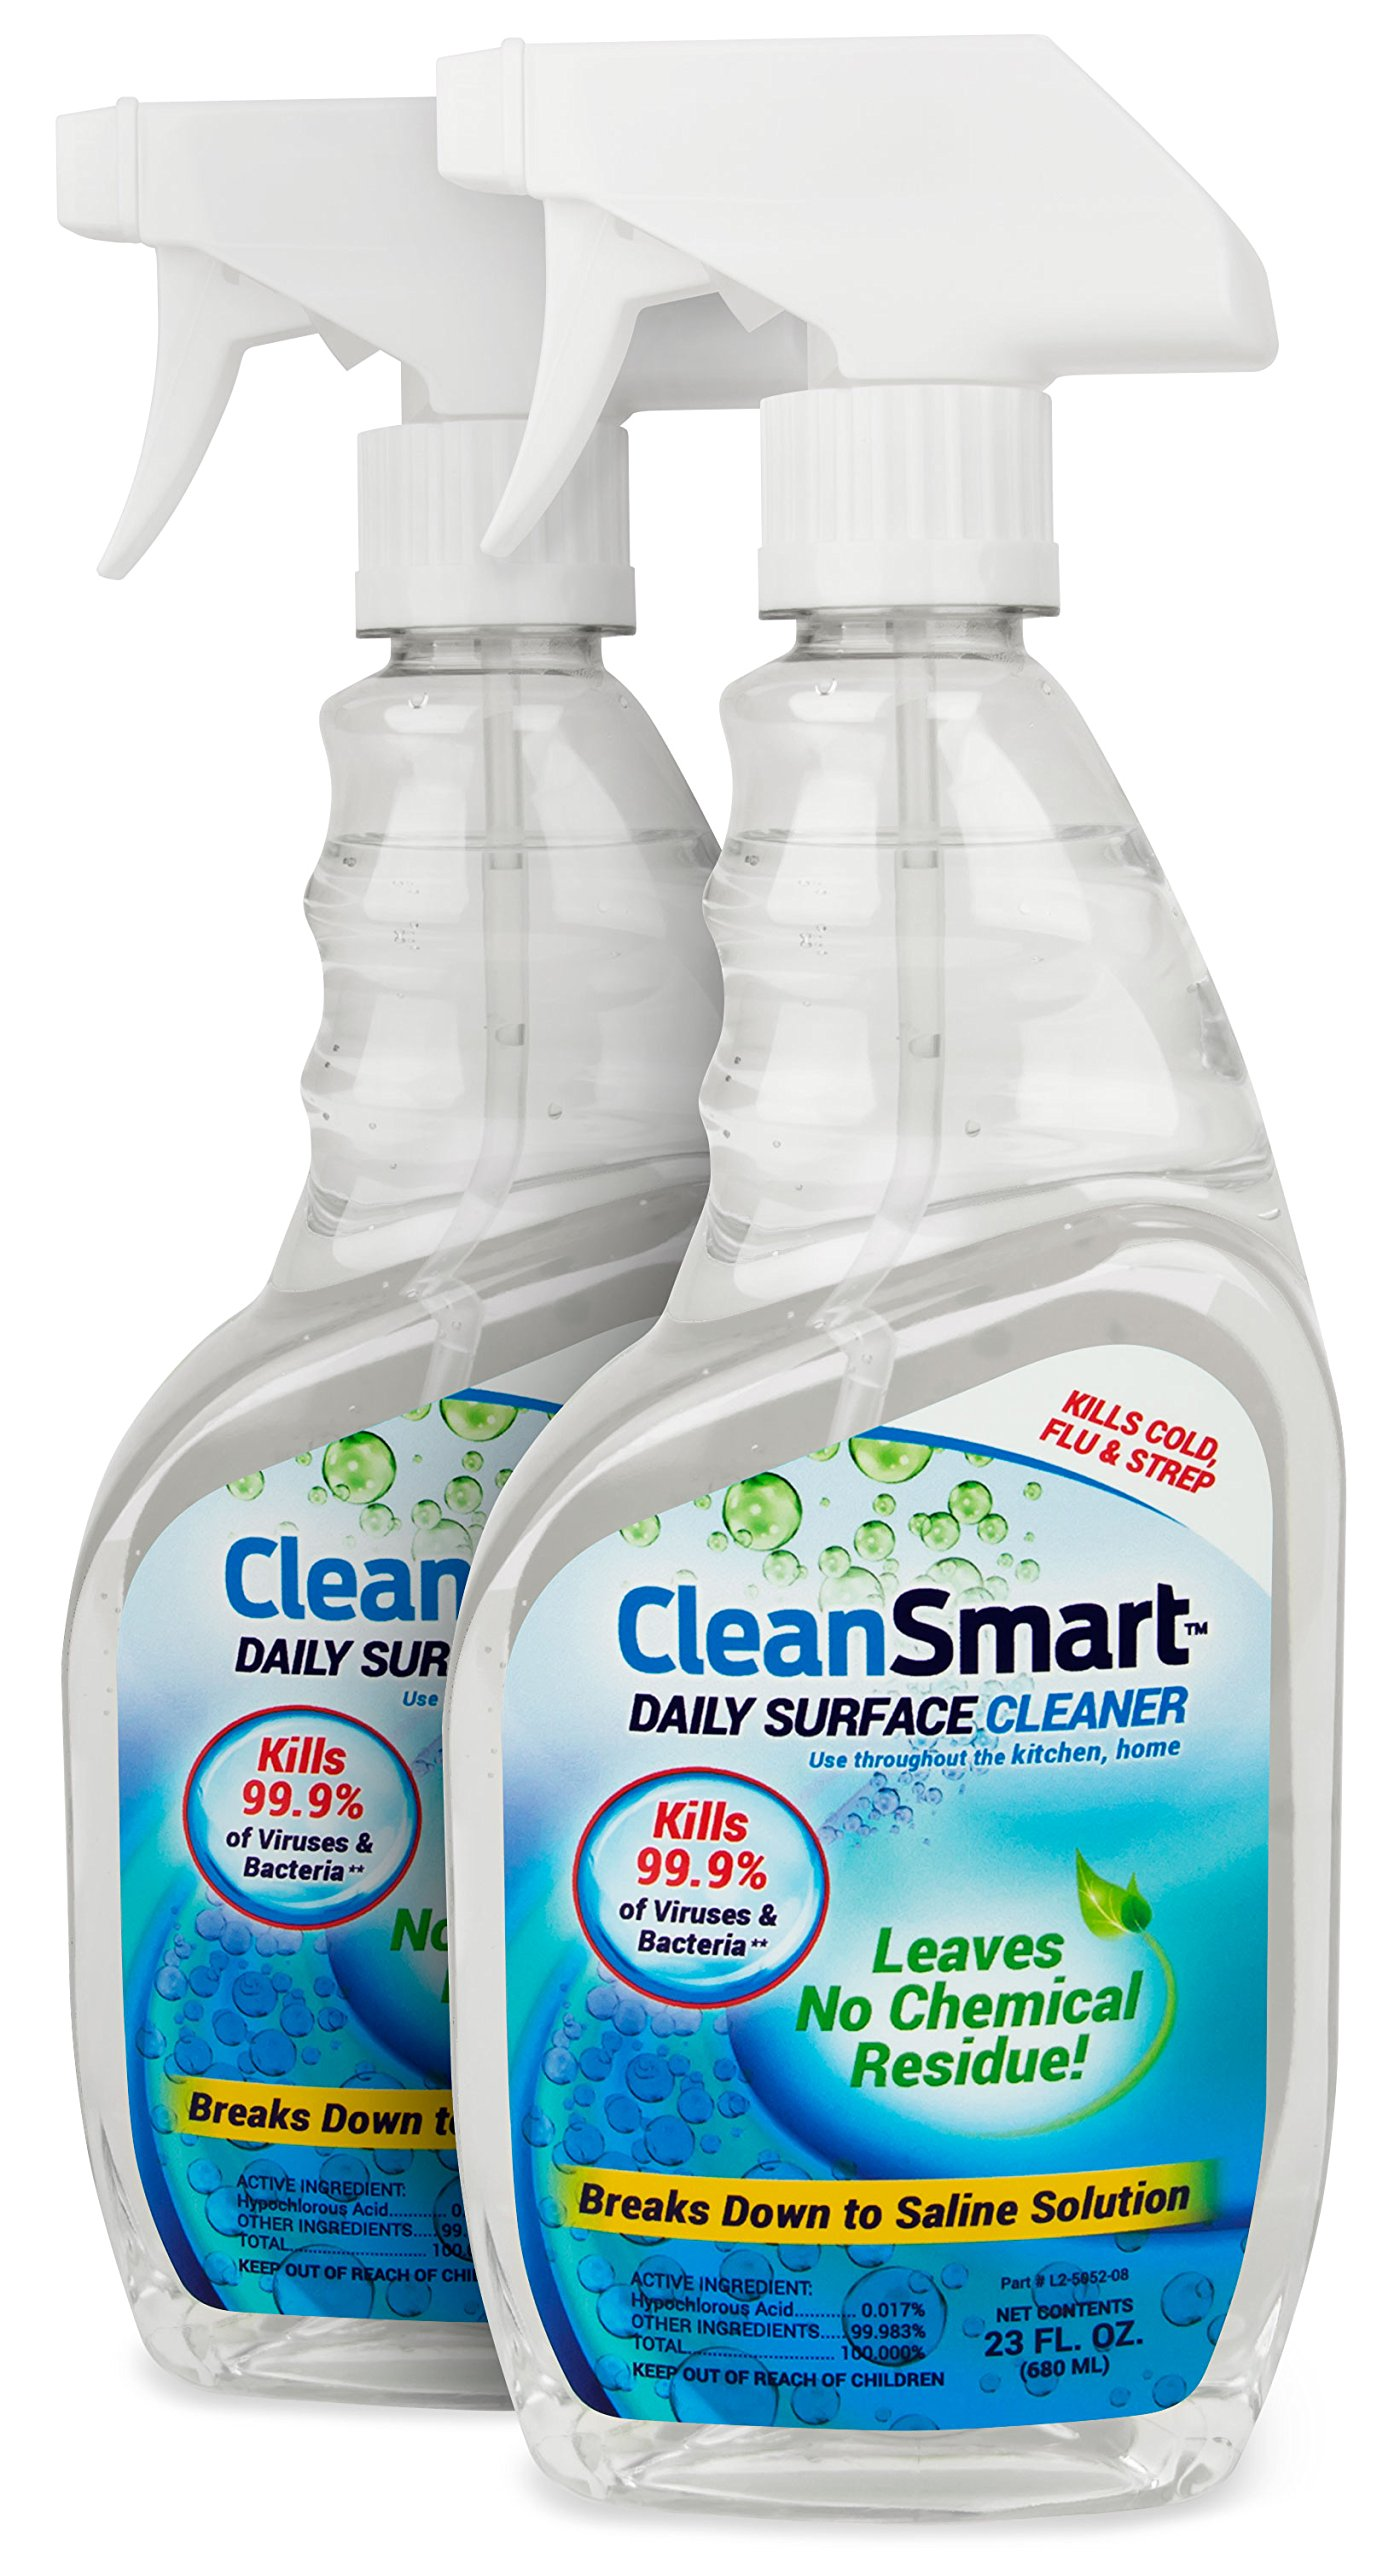 CleanSmart Daily Surface Cleaner, Home Use and CPAPs. Kills 99.9% of Bacteria, Viruses, Germs, Mold, Fungus. Leaves No Chemical Residue!!! Great CPAP cleaner, CPAP sanitizer. 23oz, 2PK